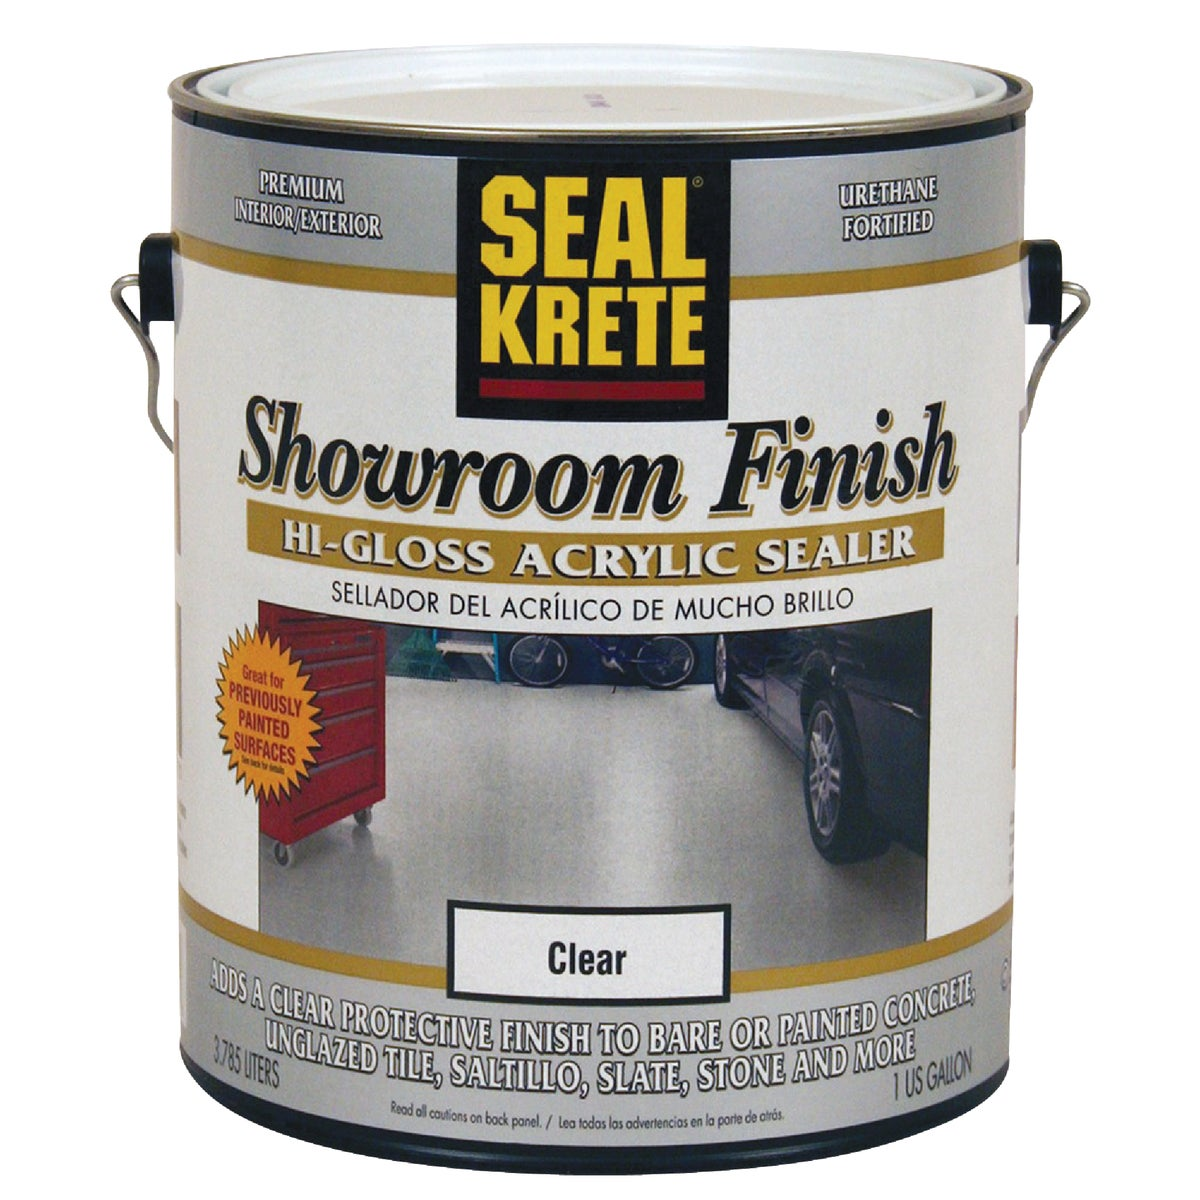 HI-GLS CLR ACRYLC SEALER - 606001 by Convenience Products